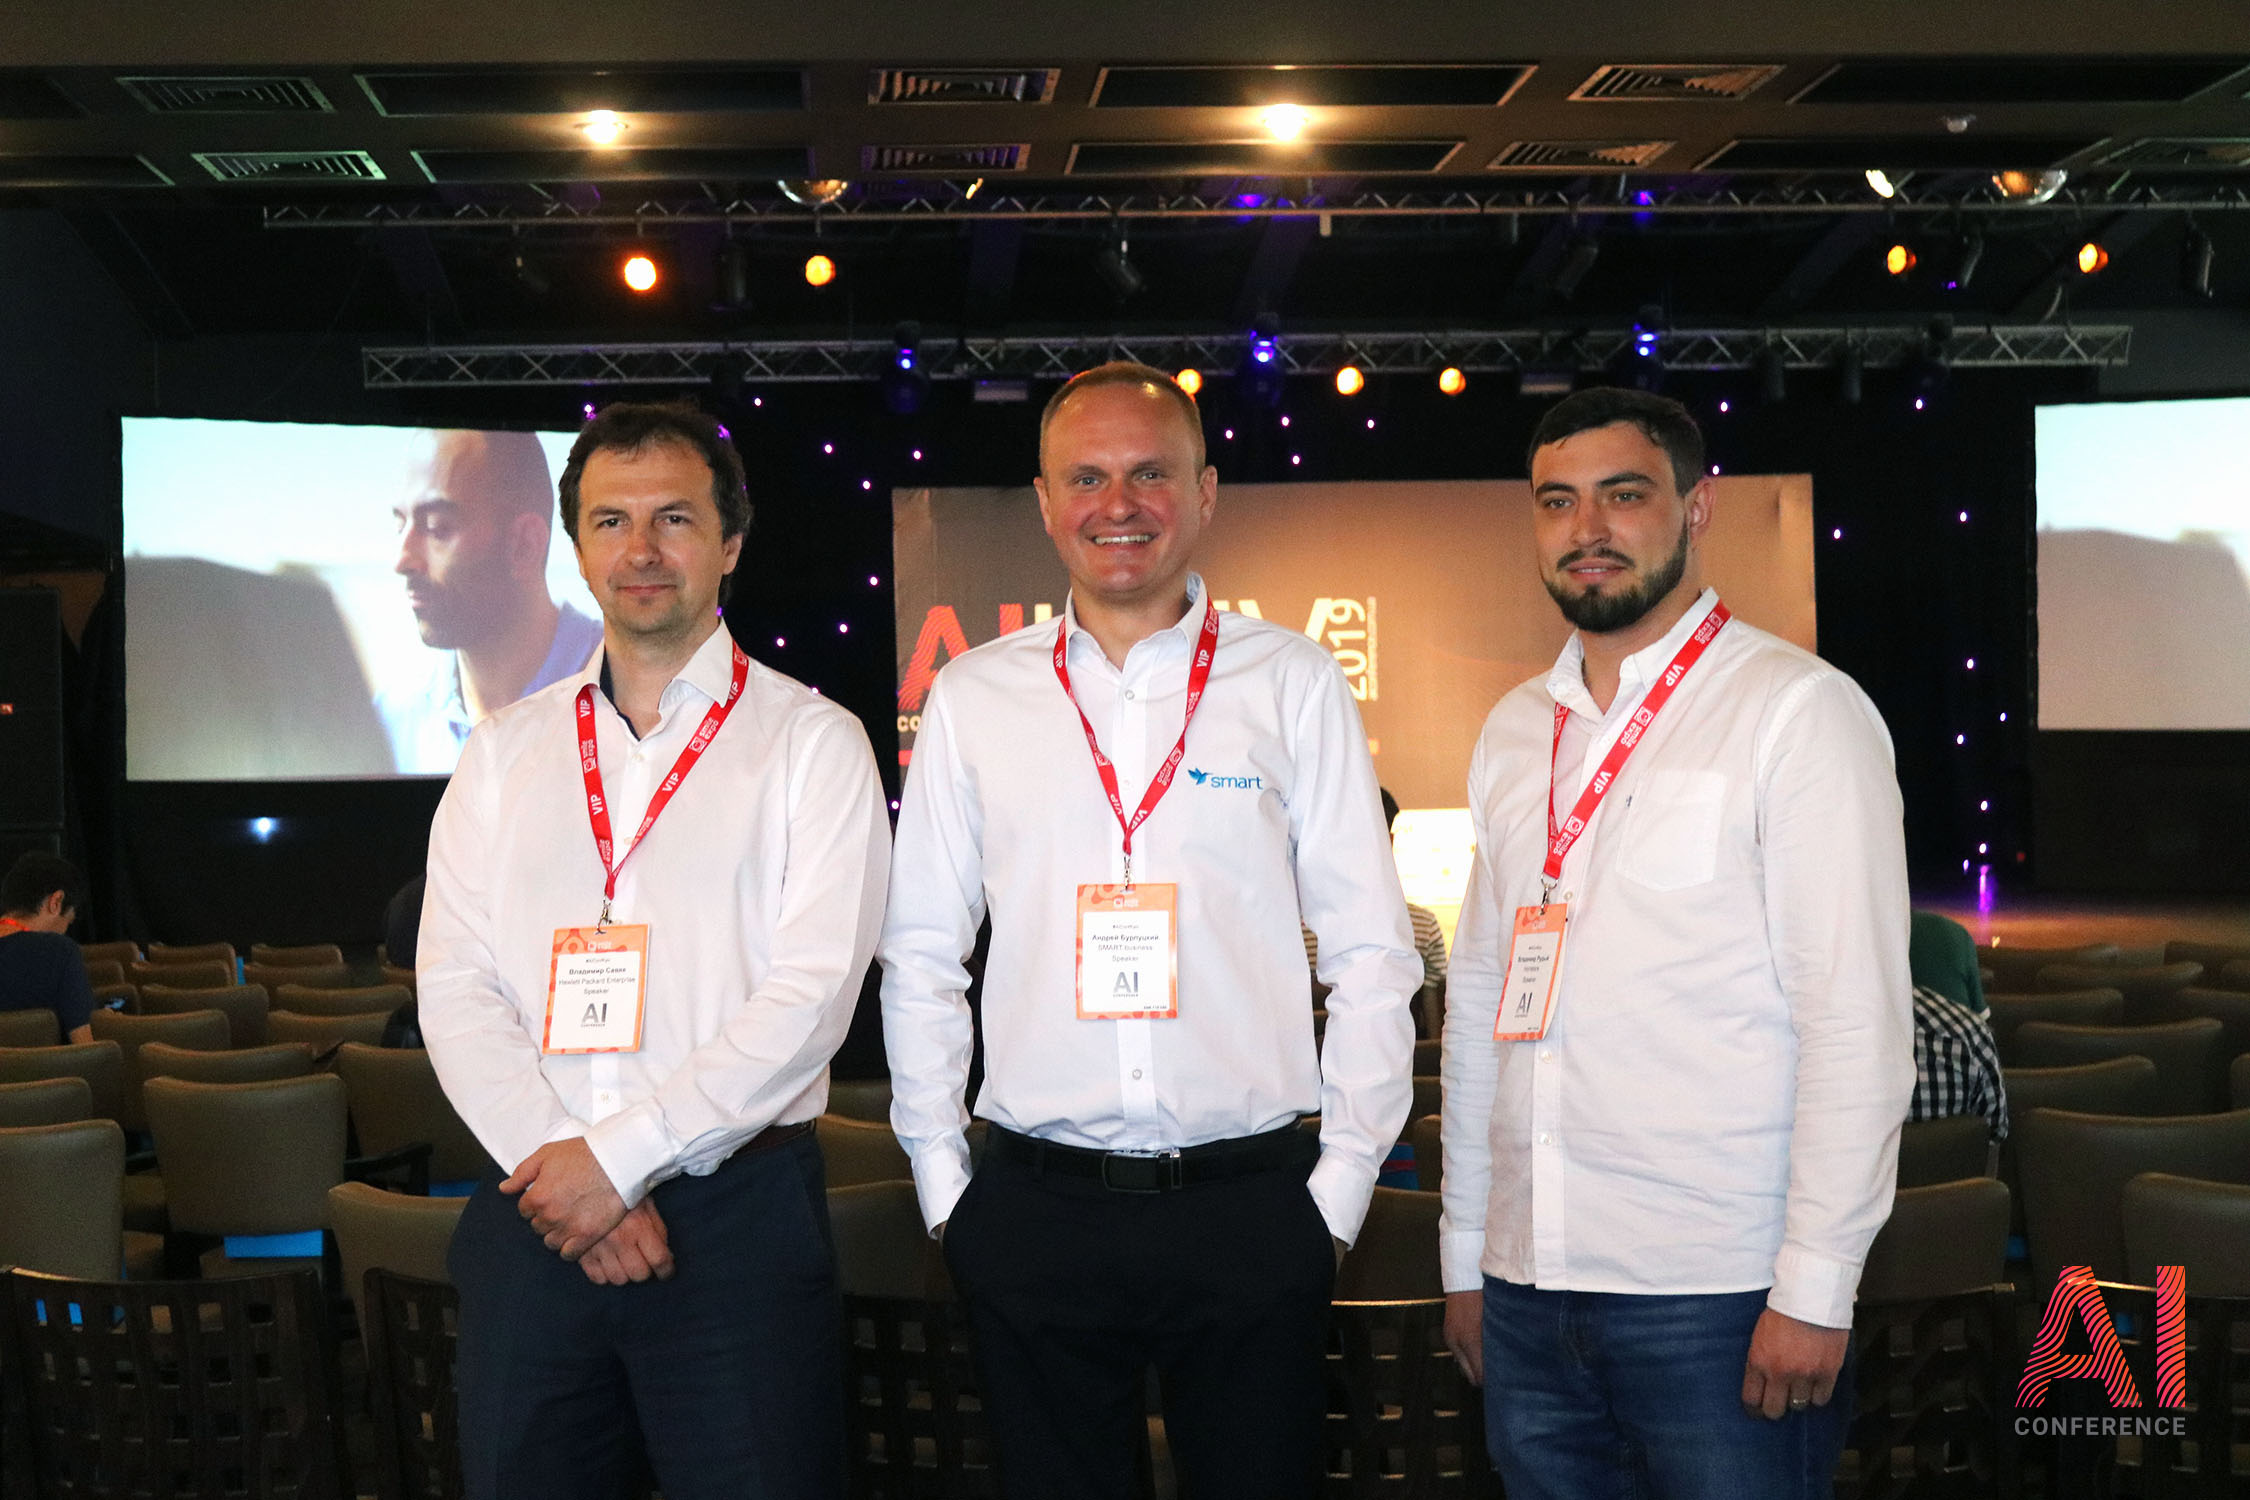 4 Results of AI Conference Kyiv 2019